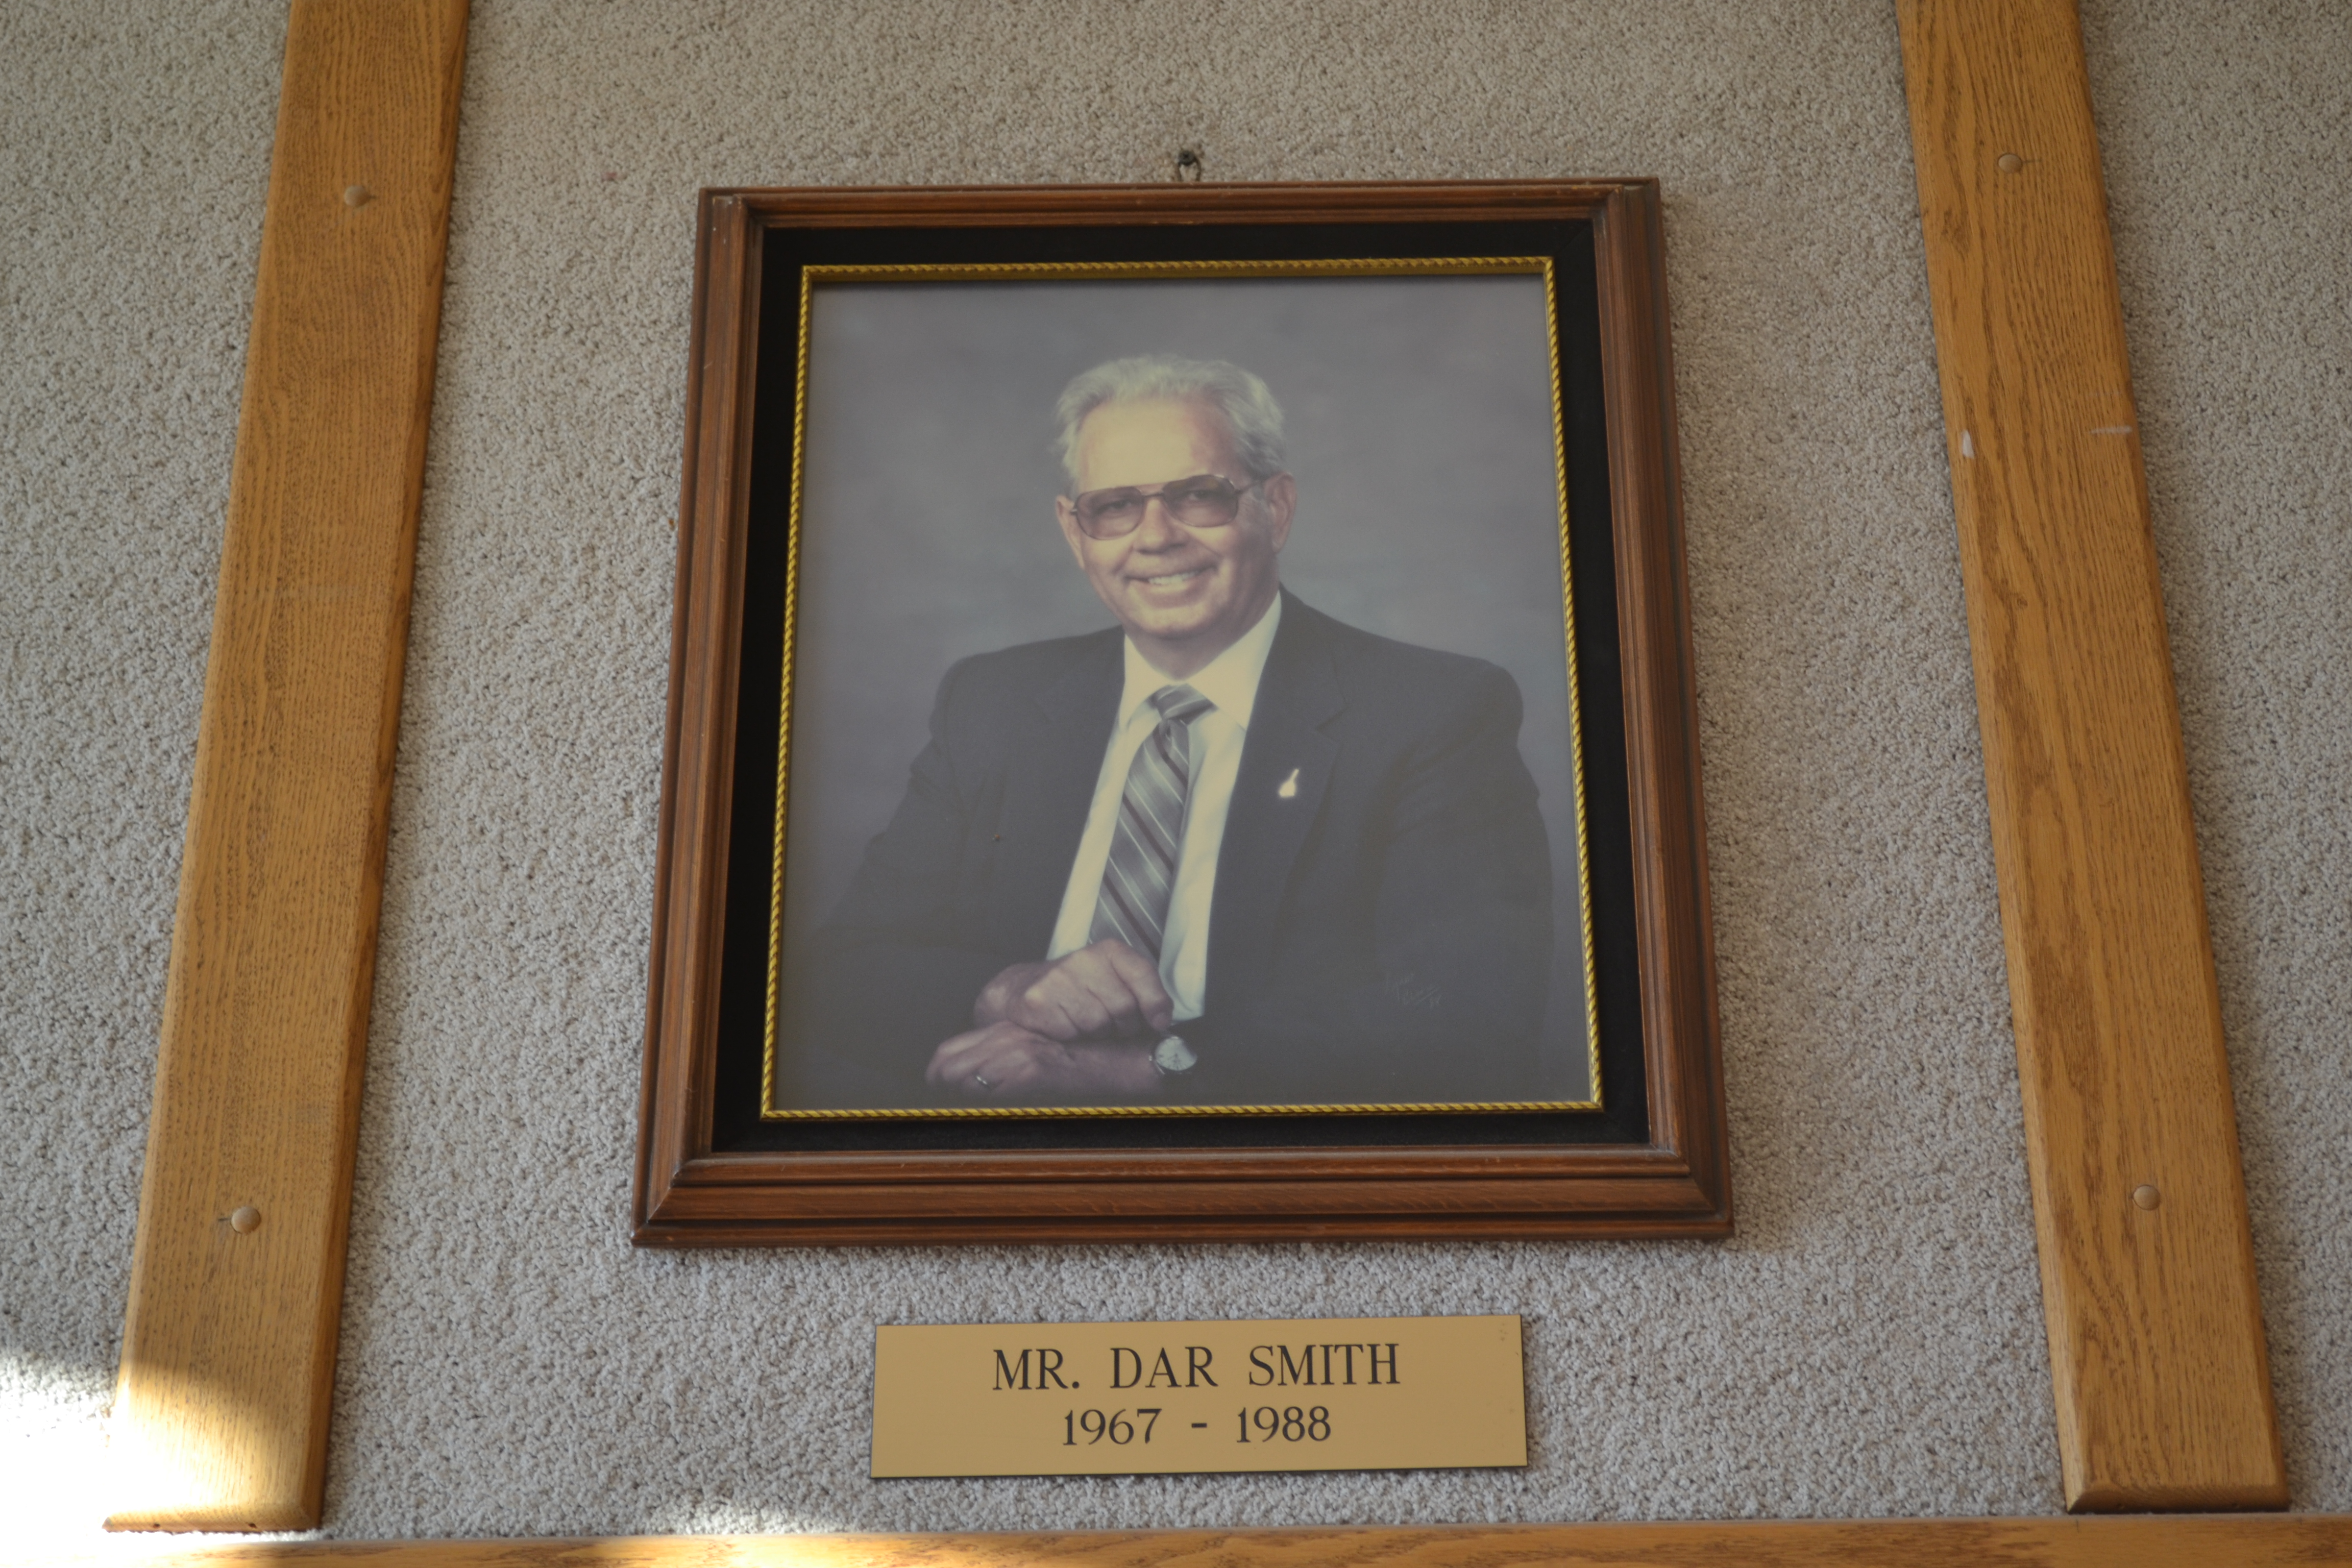 A photo of Dar Smith, principal of East Elementary from 1967-1988, hangs in the school, St. George, Utah, Nov. 7, 2016 | Photo by Joseph Witham, St. George News